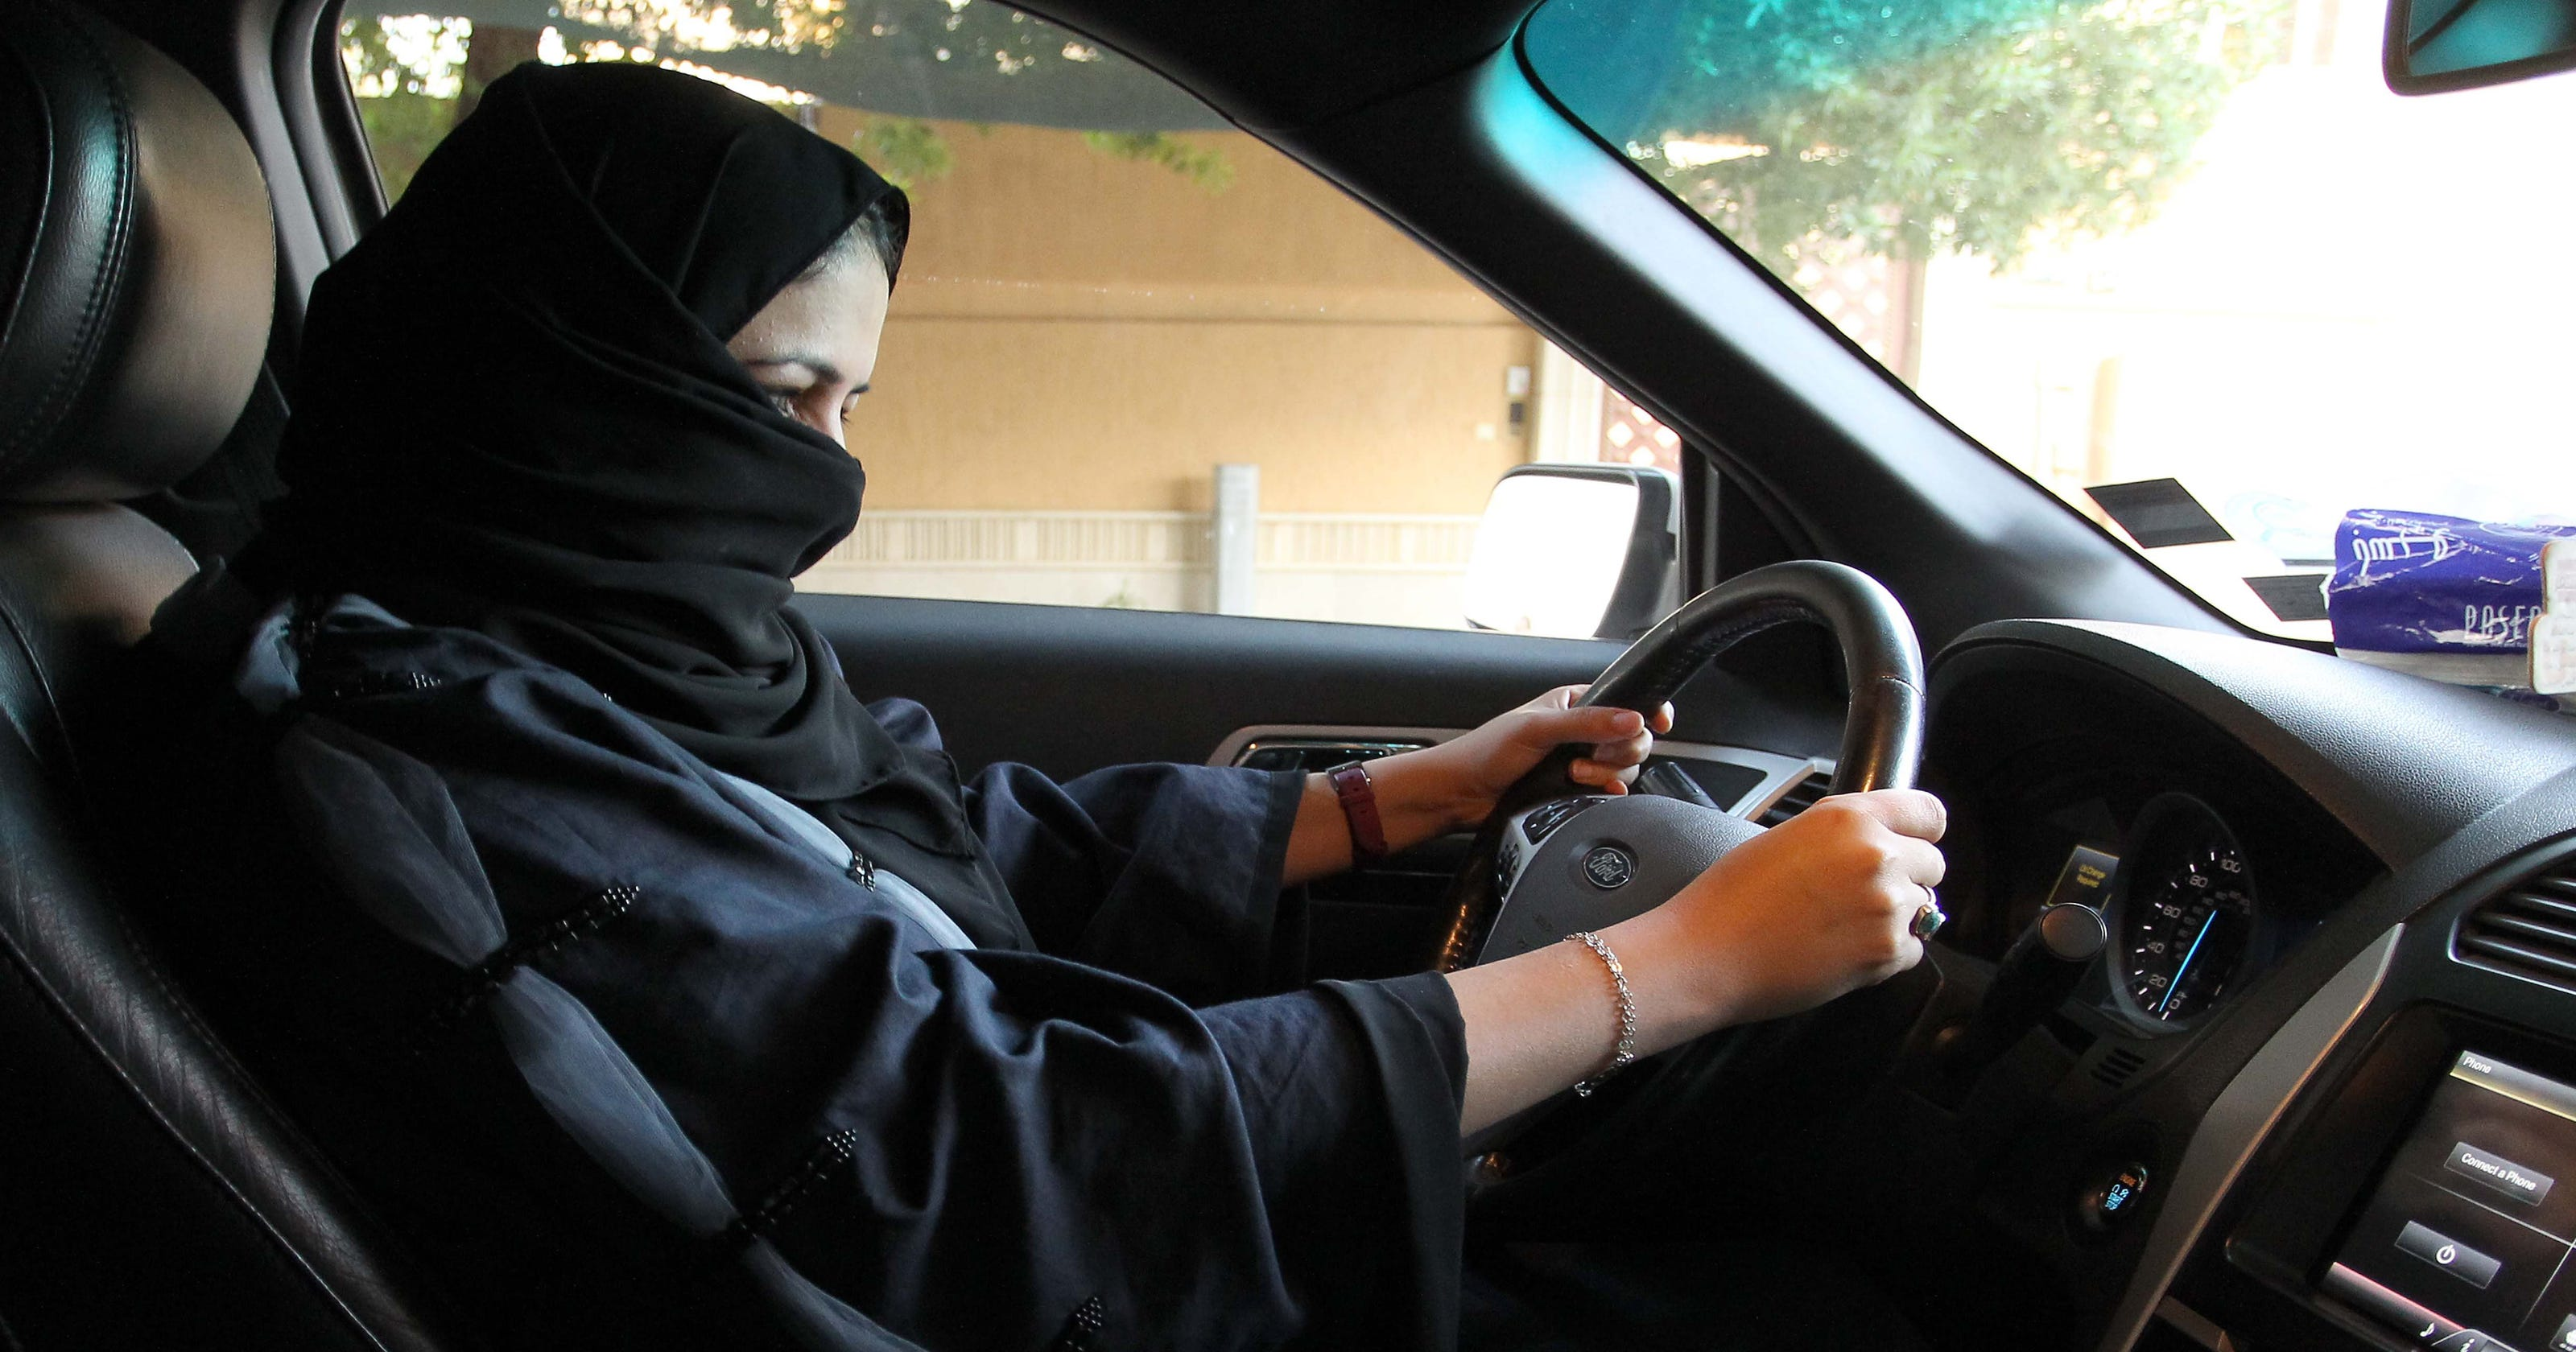 Saudi Women Get Right To Drive As Their Champions Are Jailed And Exiled